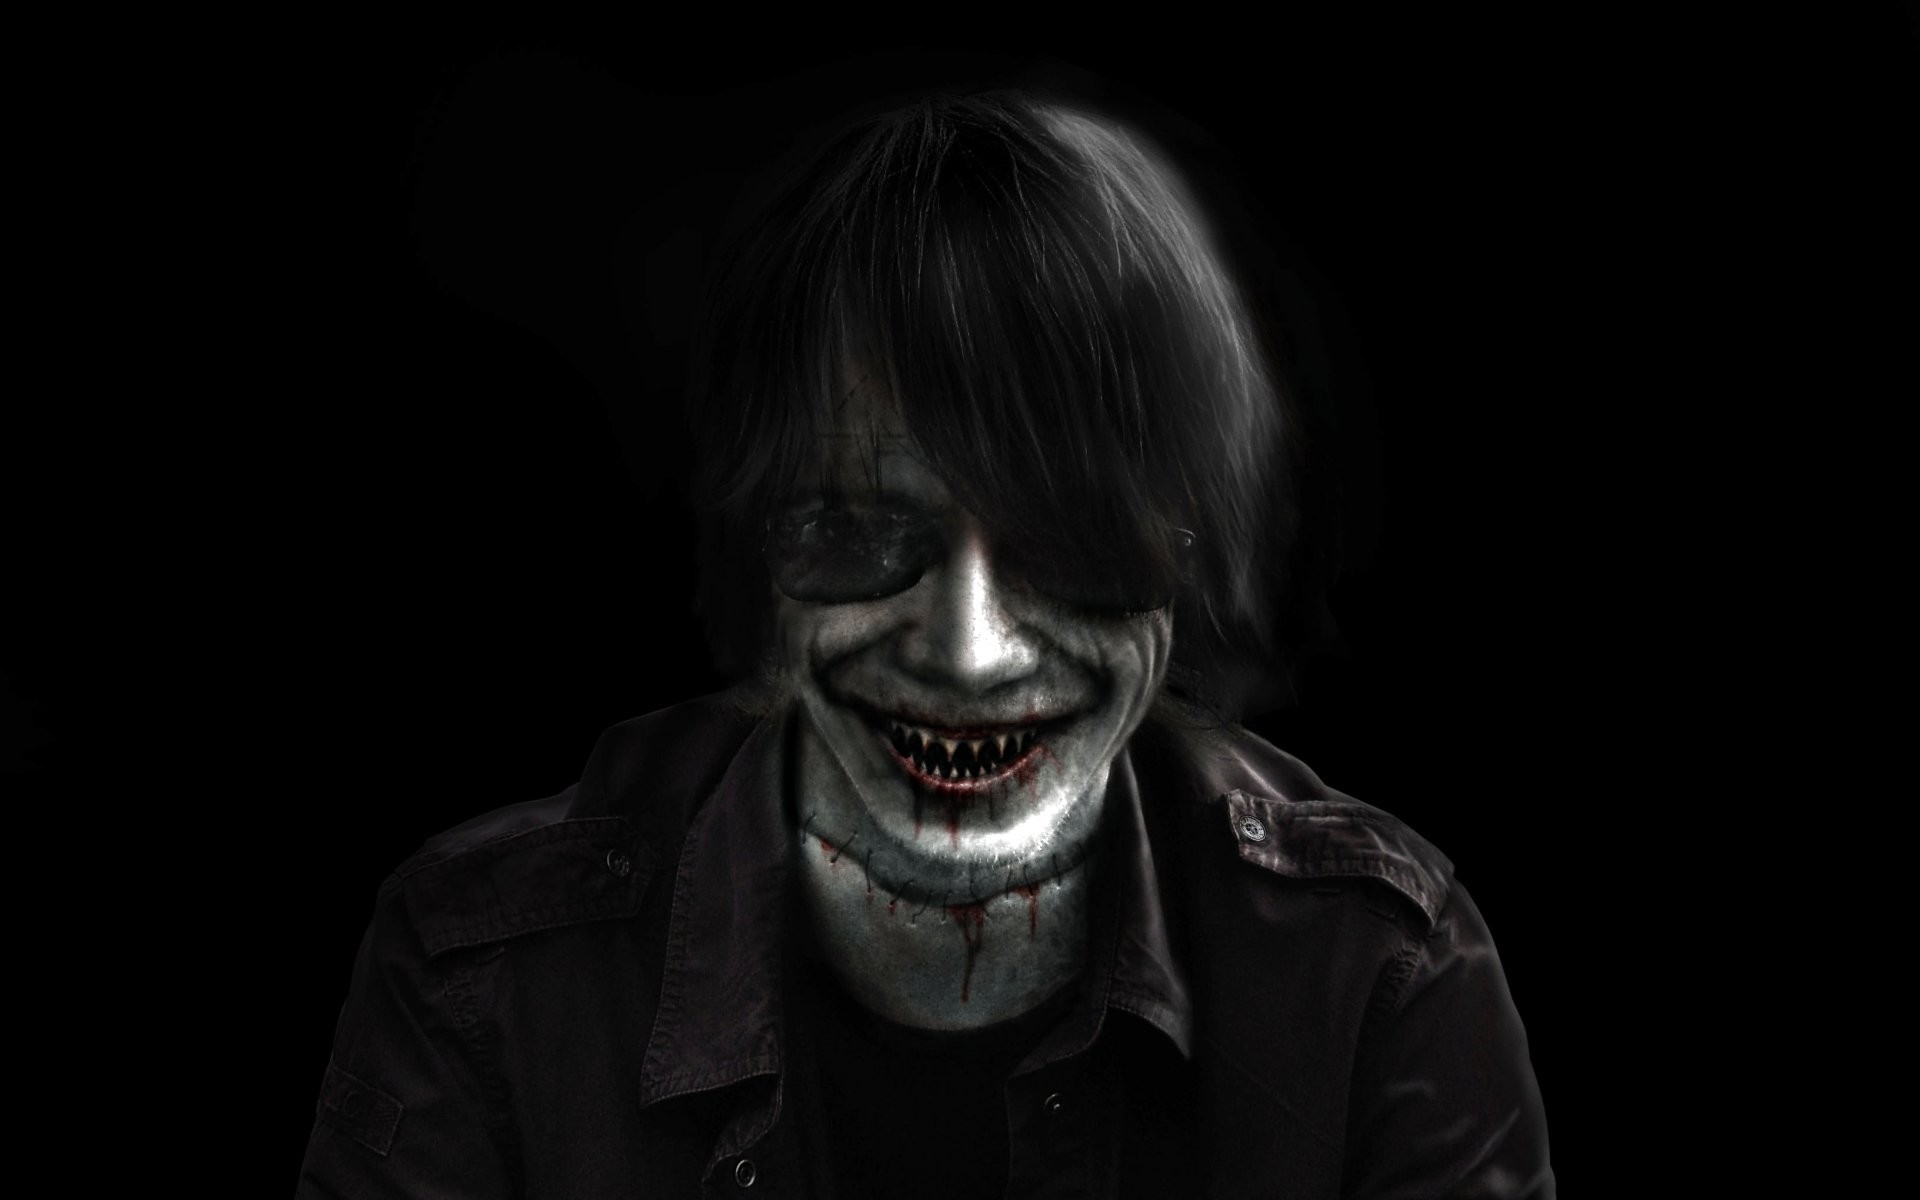 Scary HD Wallpaper (61+ images)